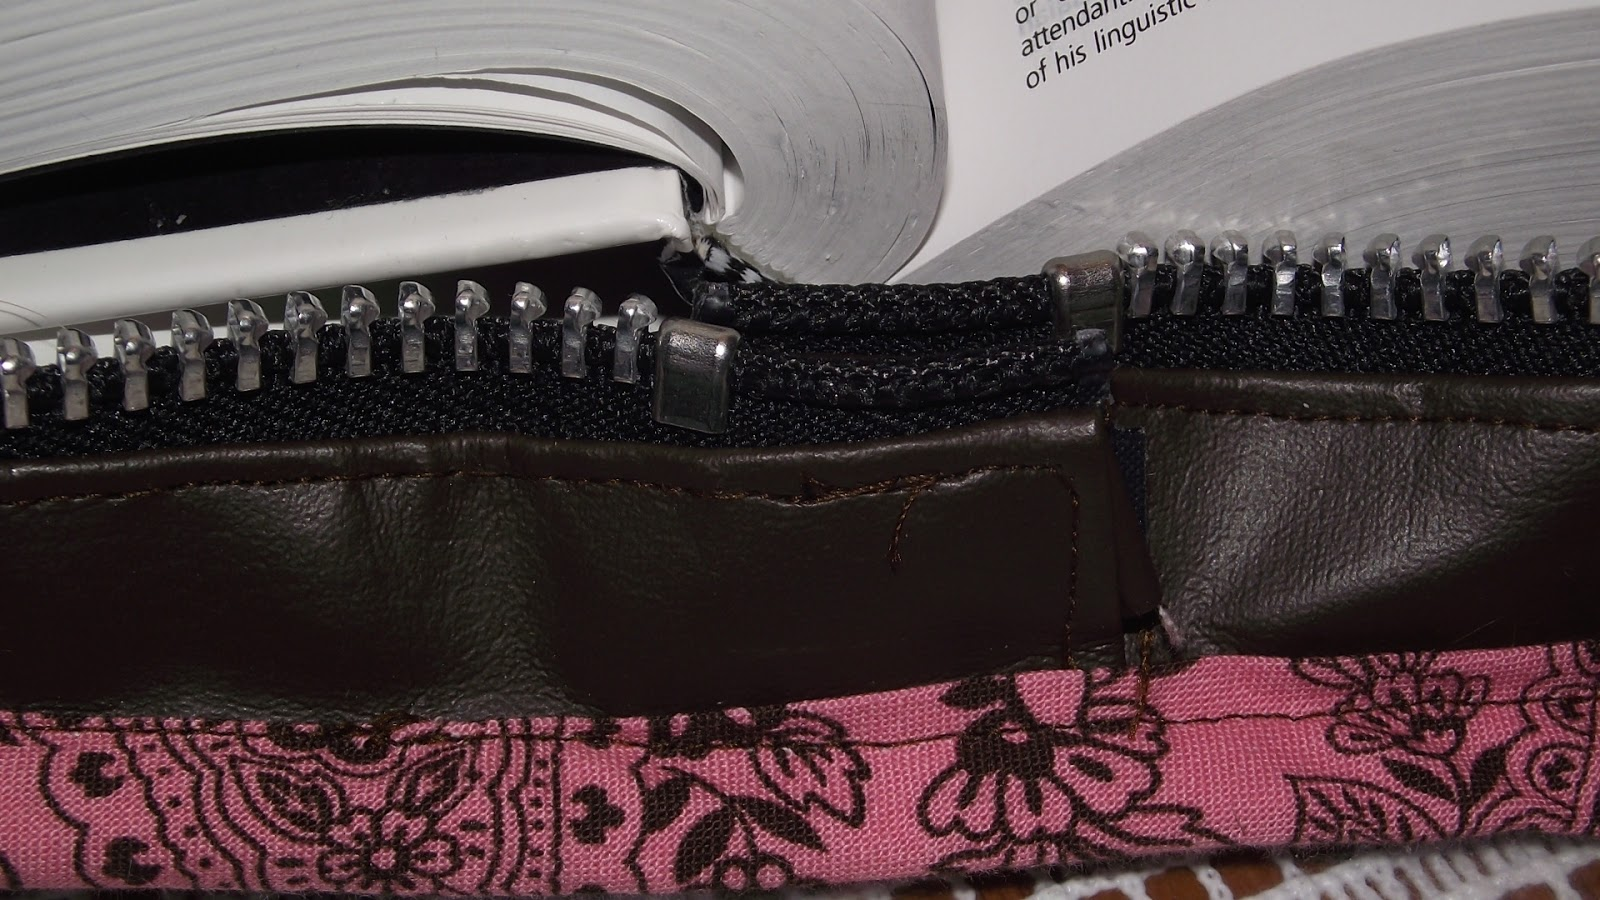 Book Cover Sewing Zippers : Fabulous home sewn zippered book cover tutorial